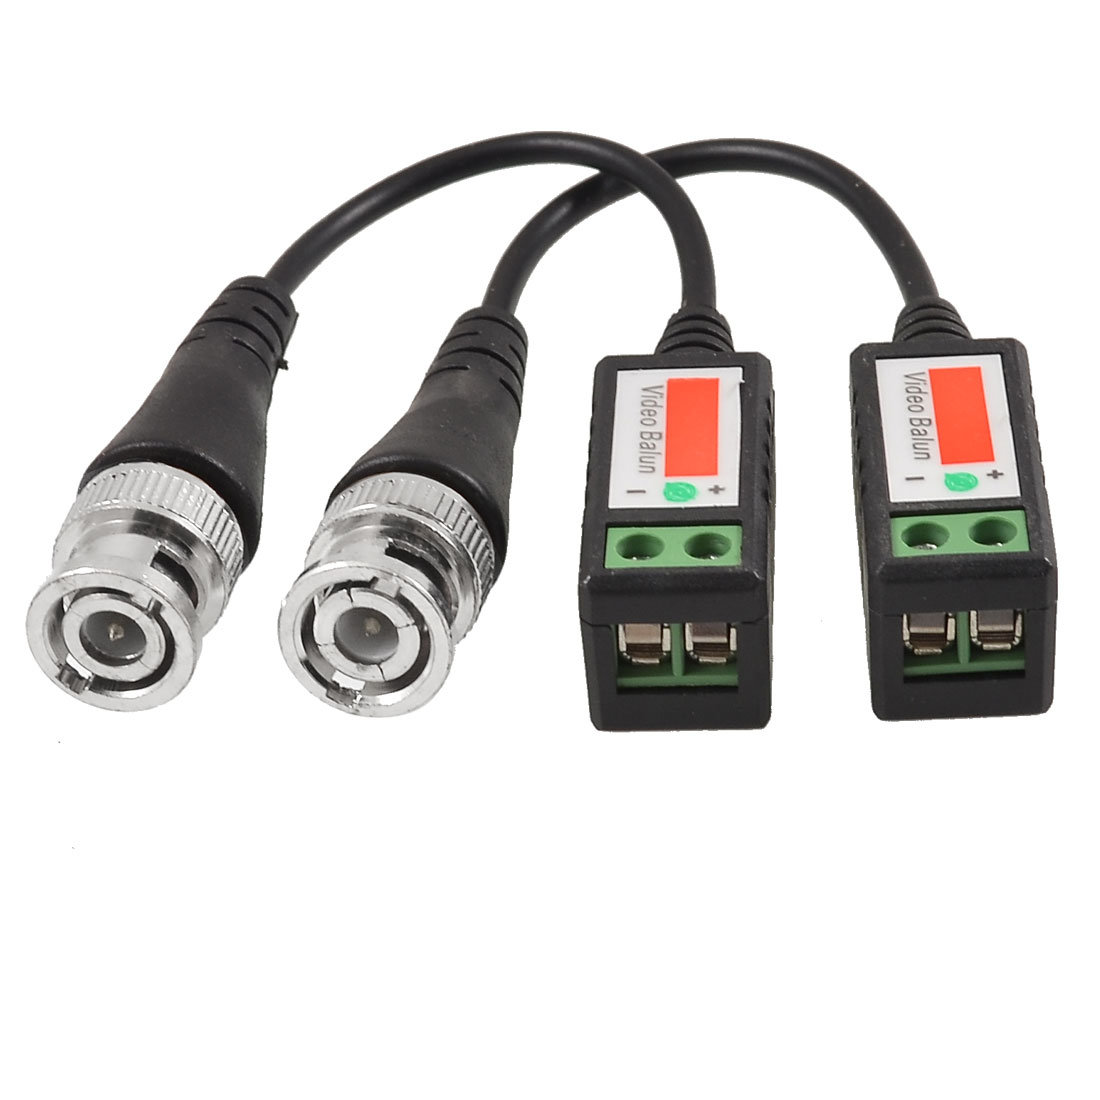 Unique Bargains 1 Channel CCTV Via Twisted Pairs UTP Passive Video Balun Transceiver Black